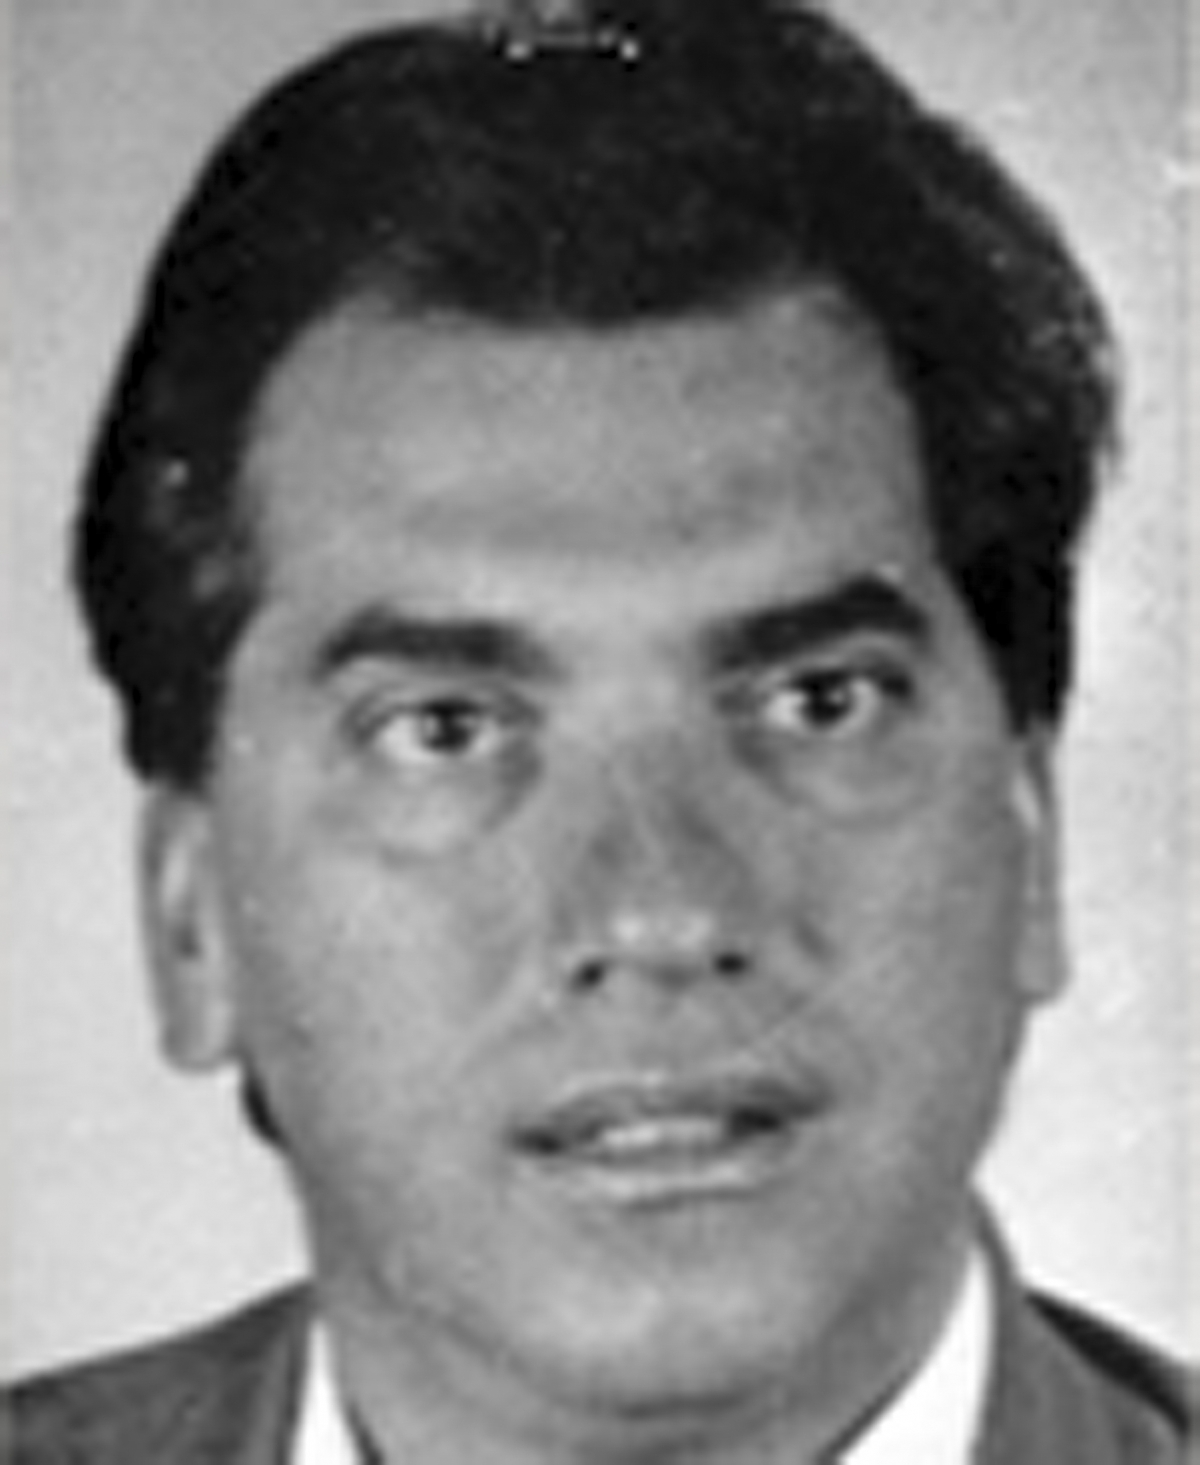 Domenco Randacore as a younger man in an undated photograph released by Italy's Interior Ministry.